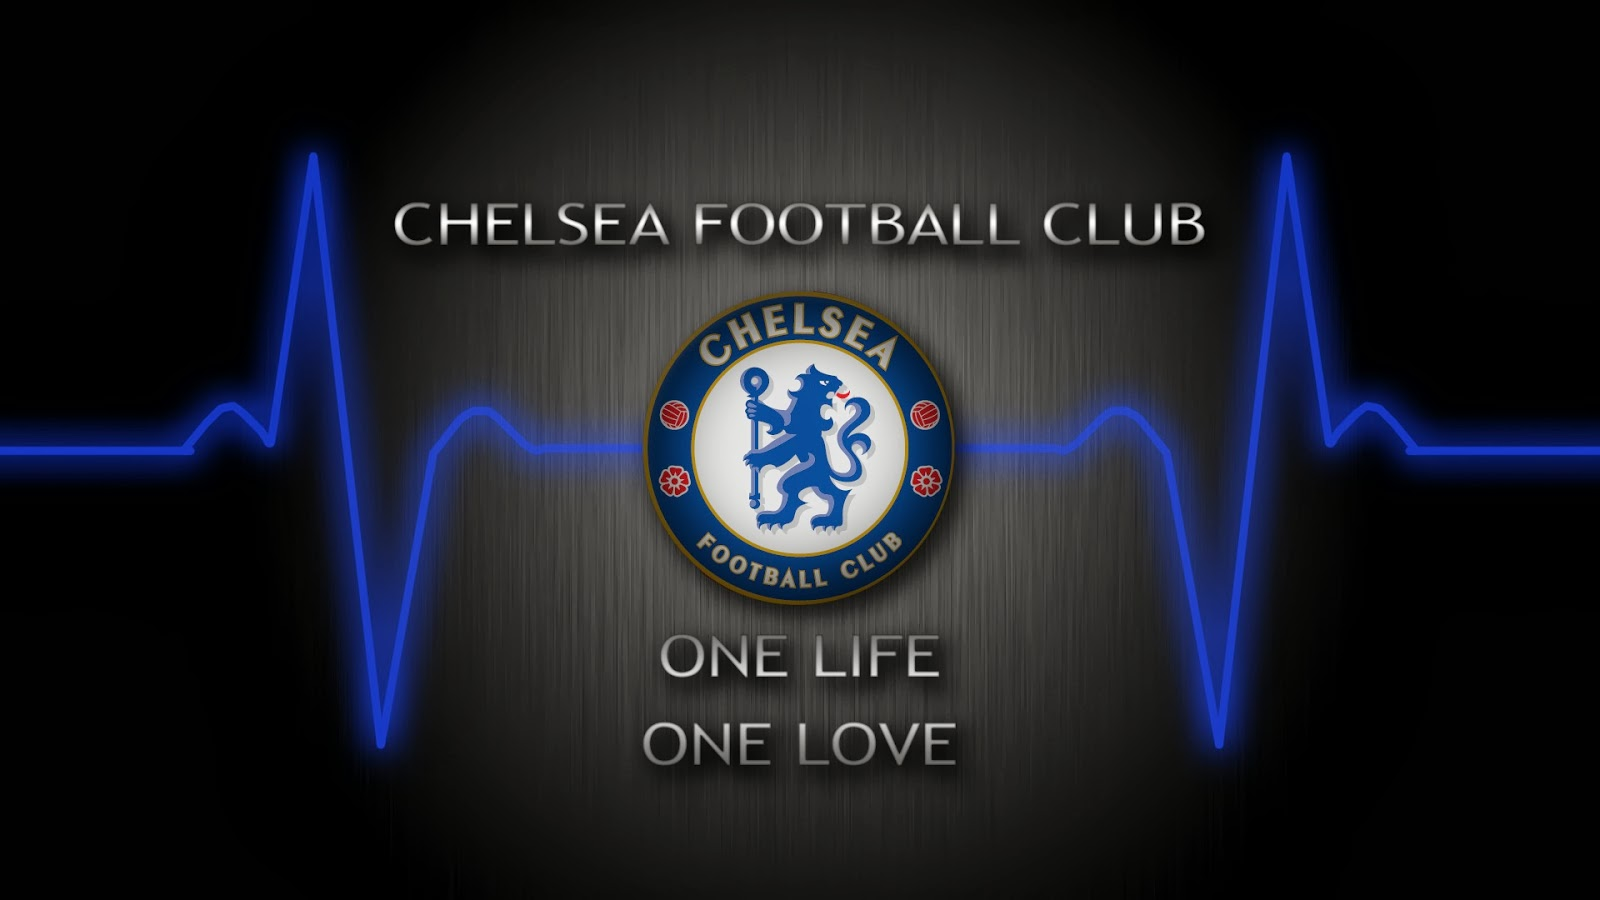 Chelsea Fc 2012 13 Wallpaper also 18407 in addition Showthread in addition Chelsea Manchester United Team Sheets together with Eden Hazard Wallpaper 2013. on oscar chelsea fc wallpaper